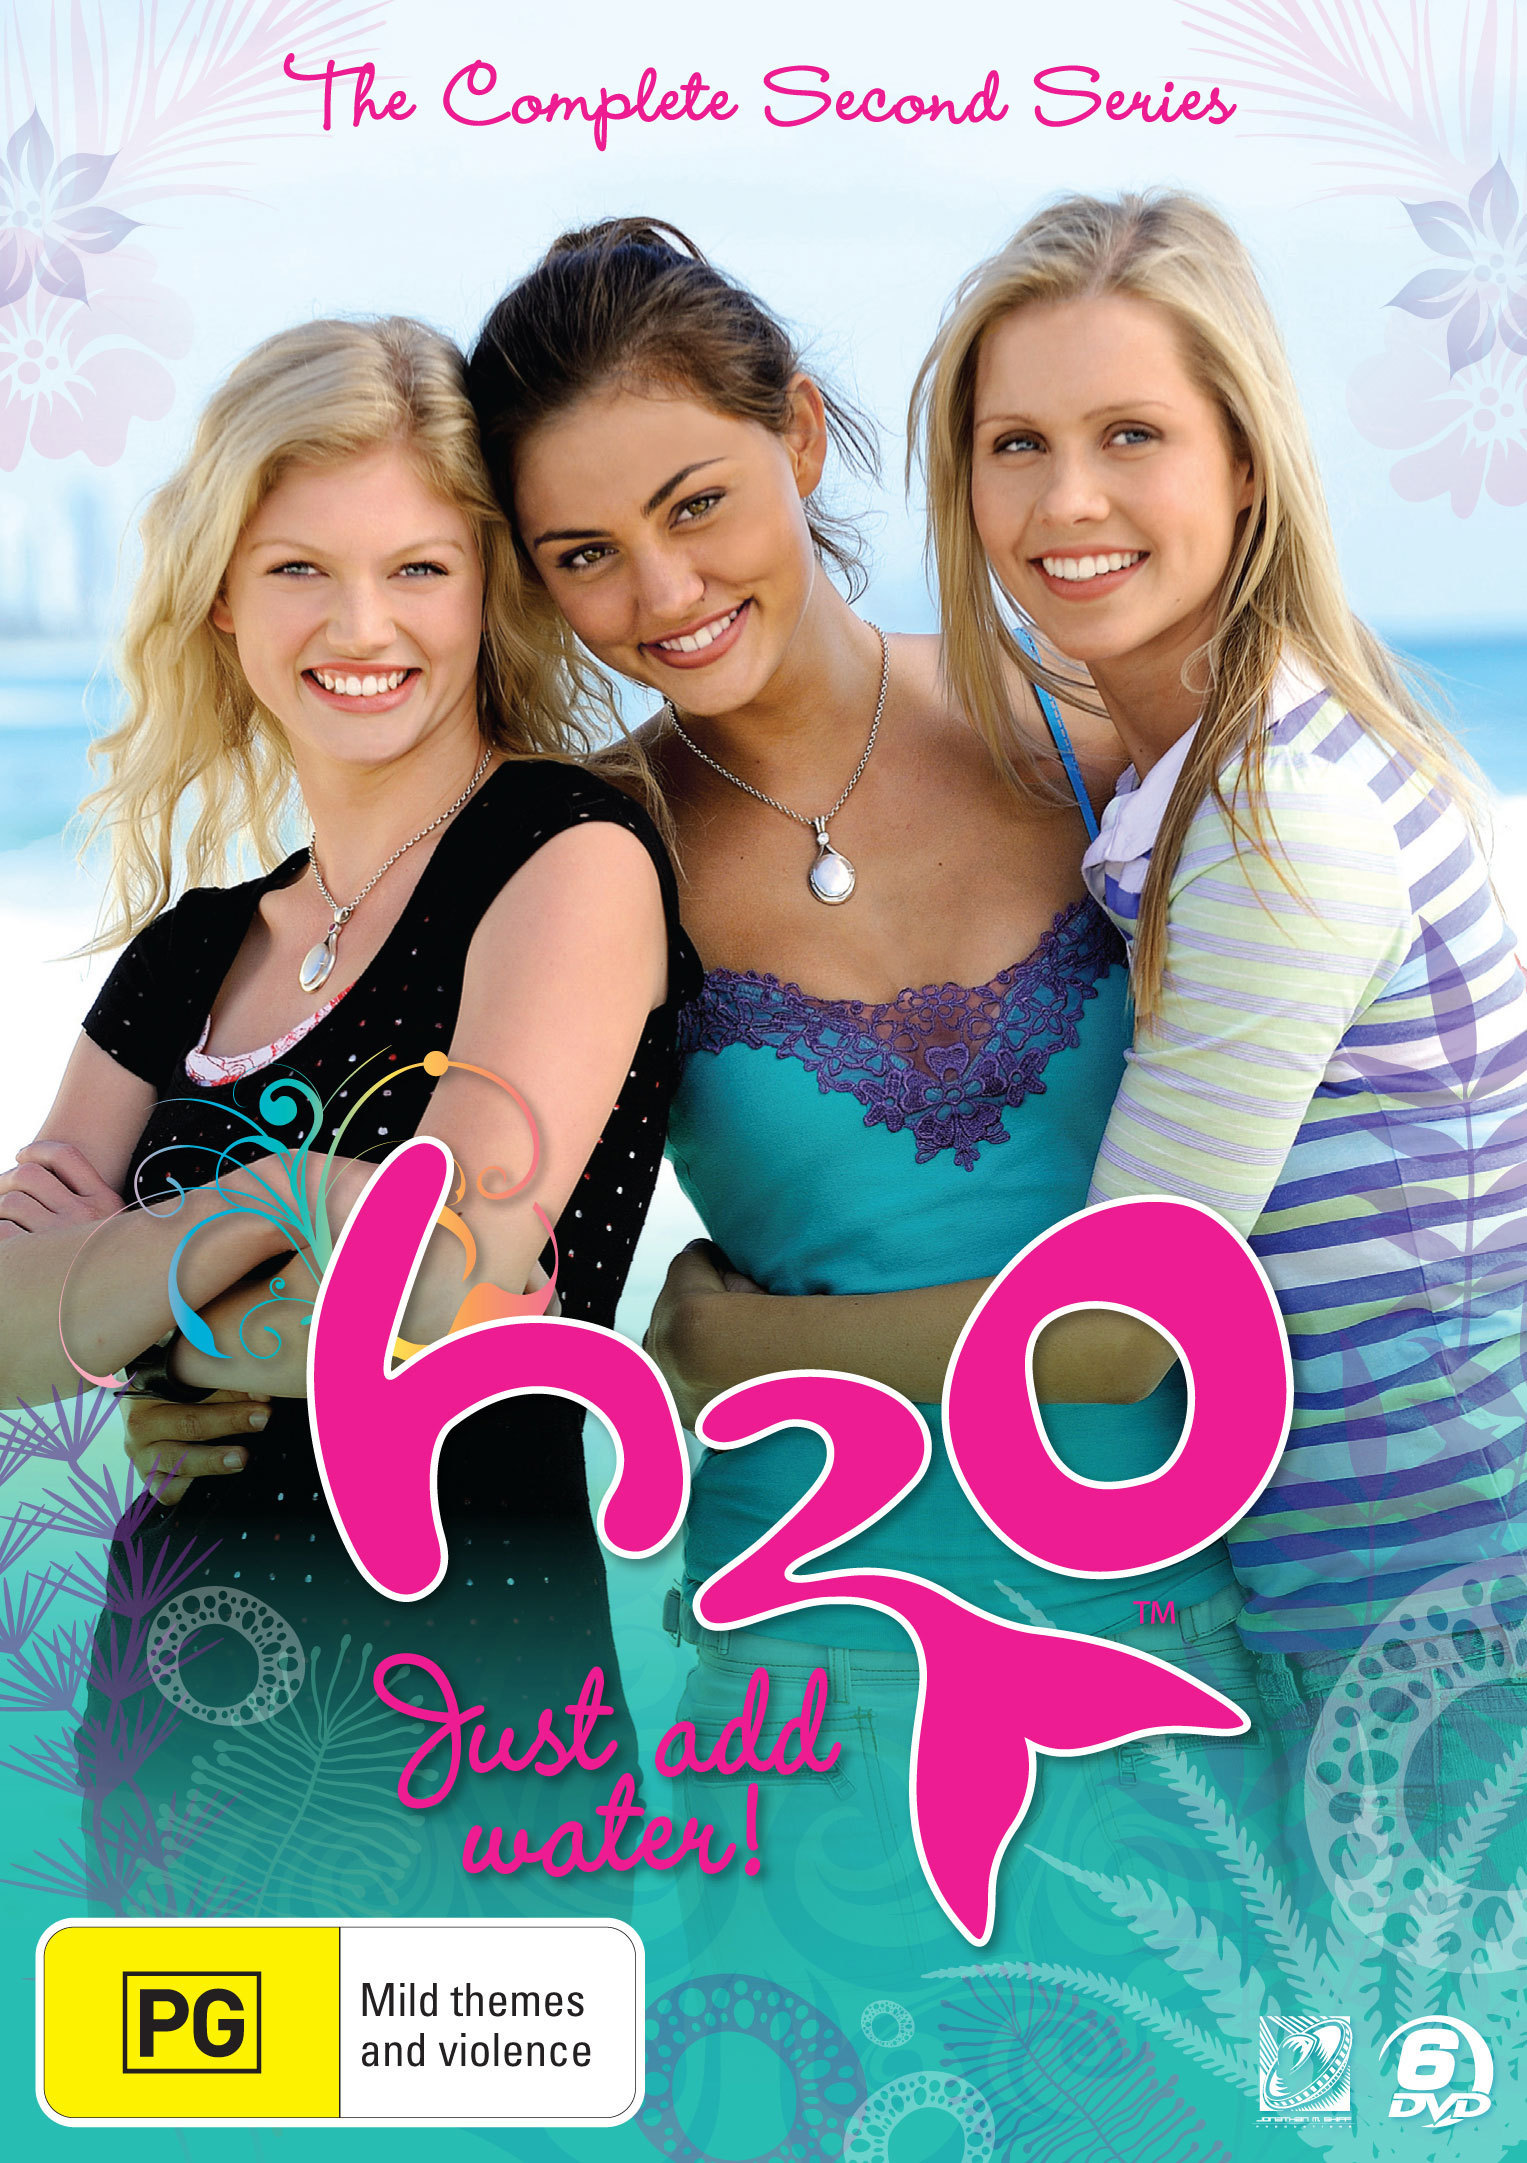 H20 just add water the movie images h20 hd wallpaper and for H20 just add water wallpaper